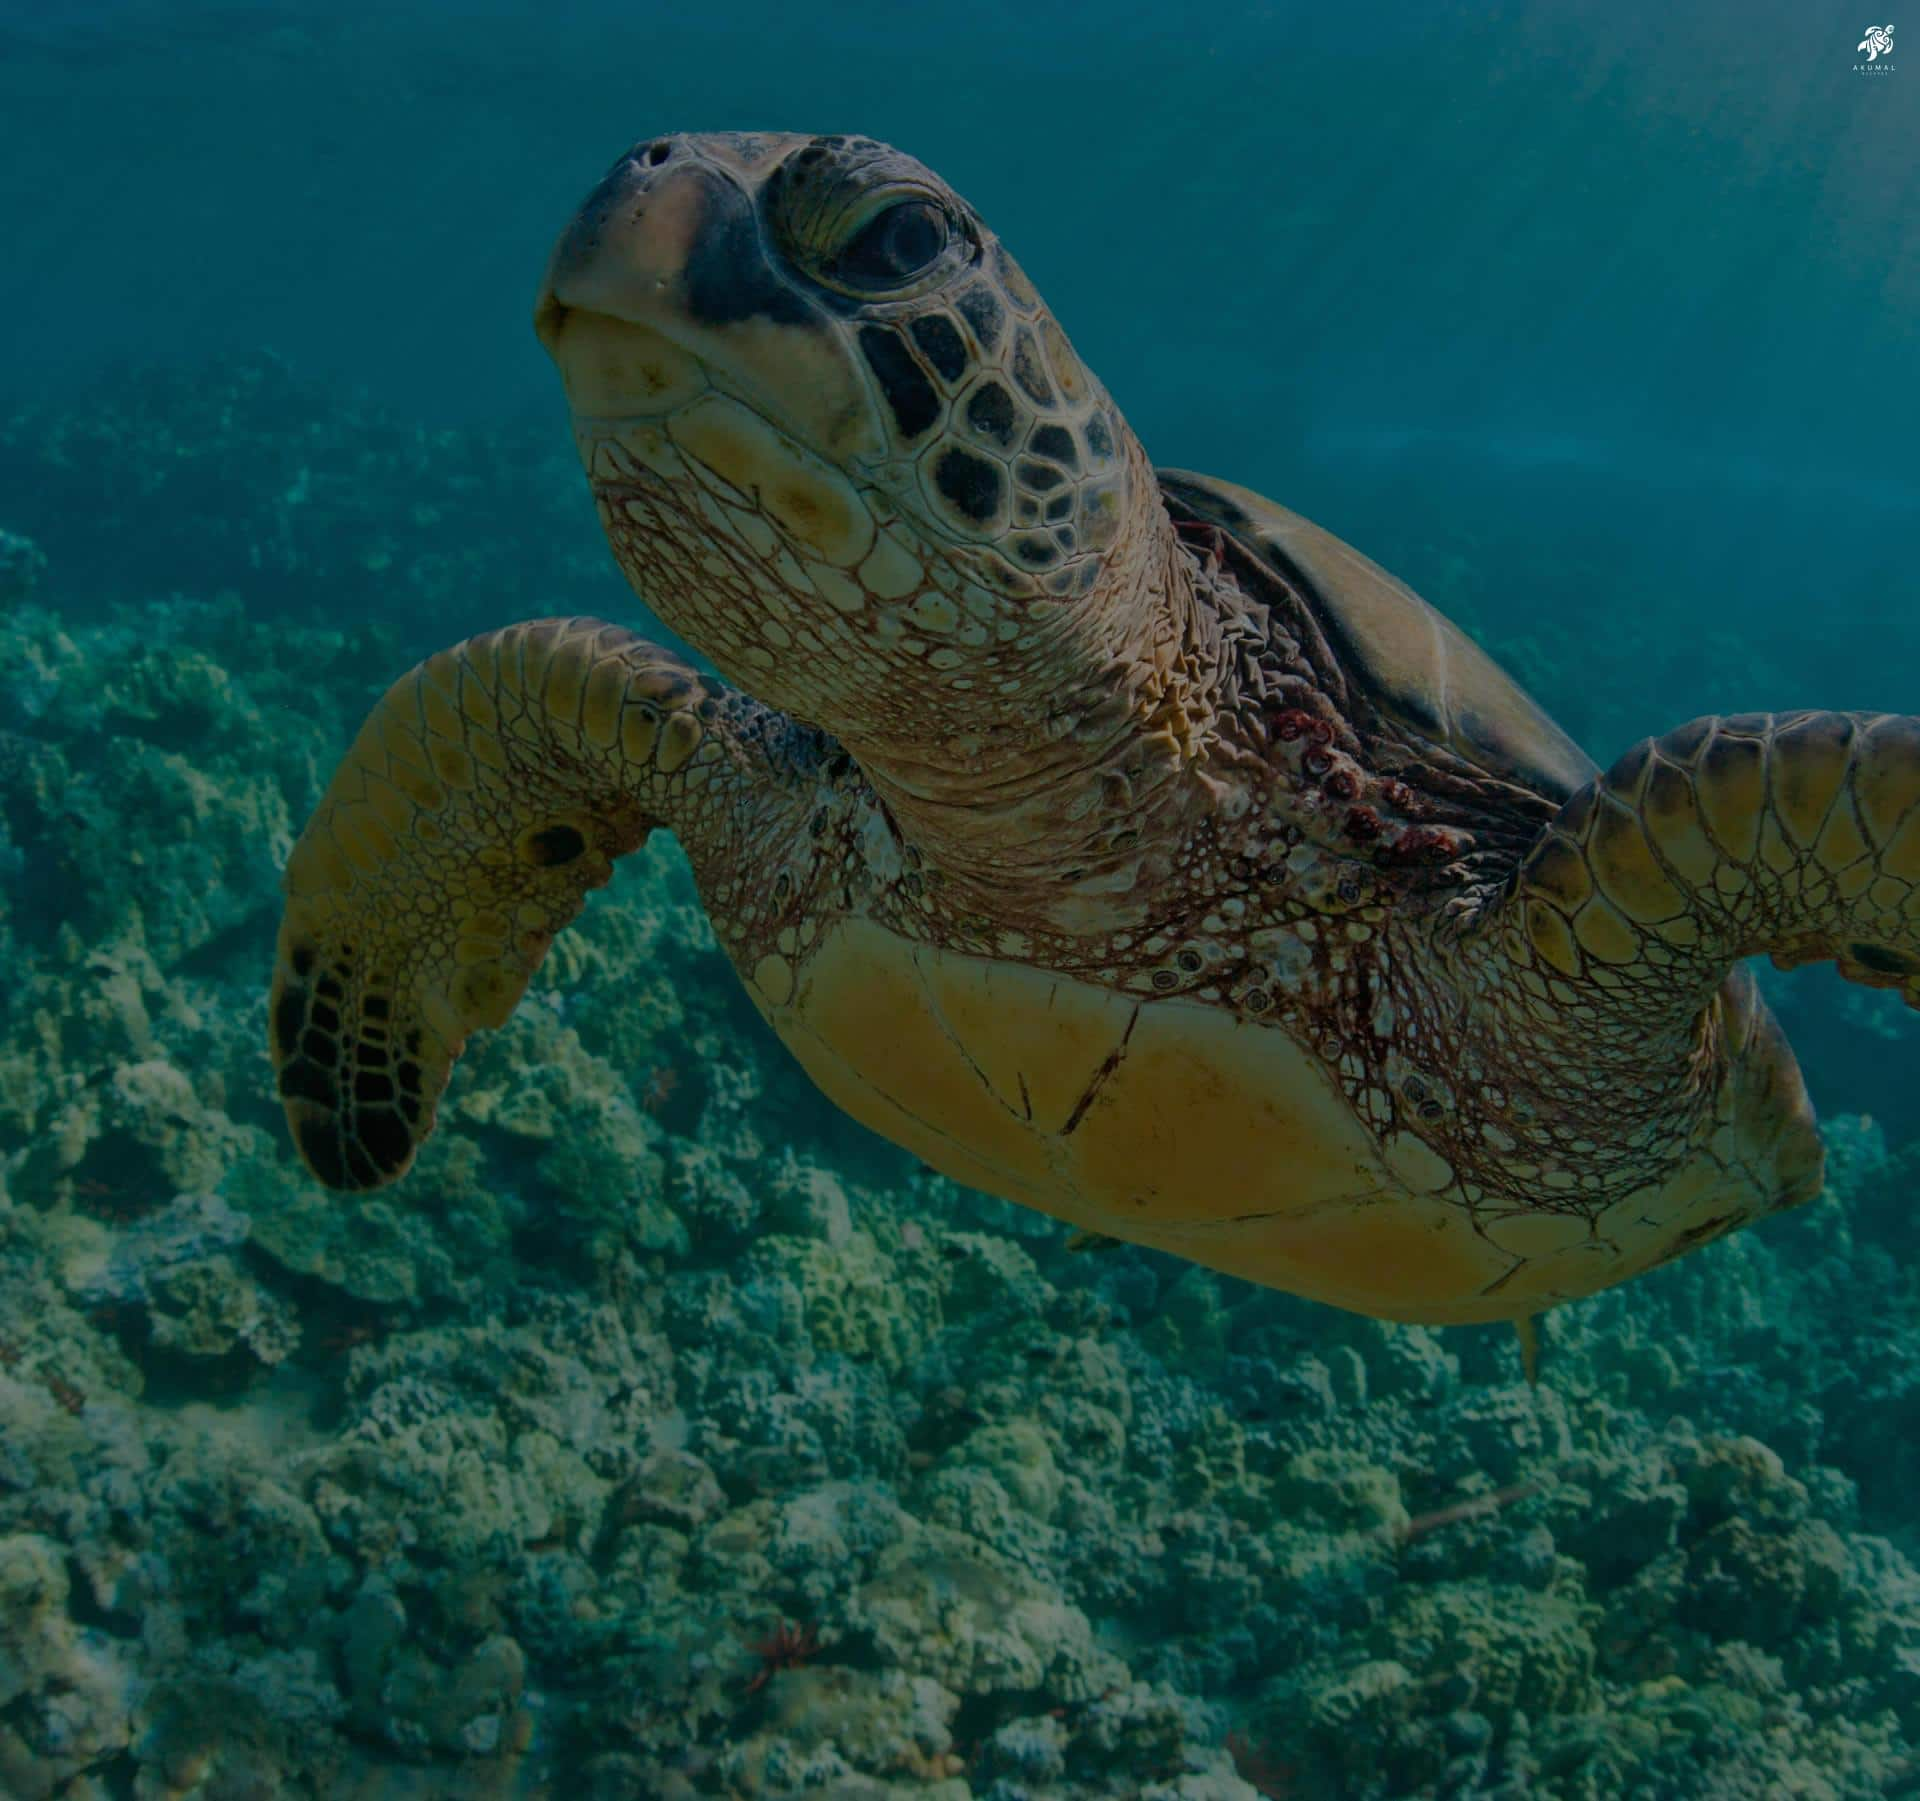 Akumal is home to 3 species of turtles which are often seen in the local reefs